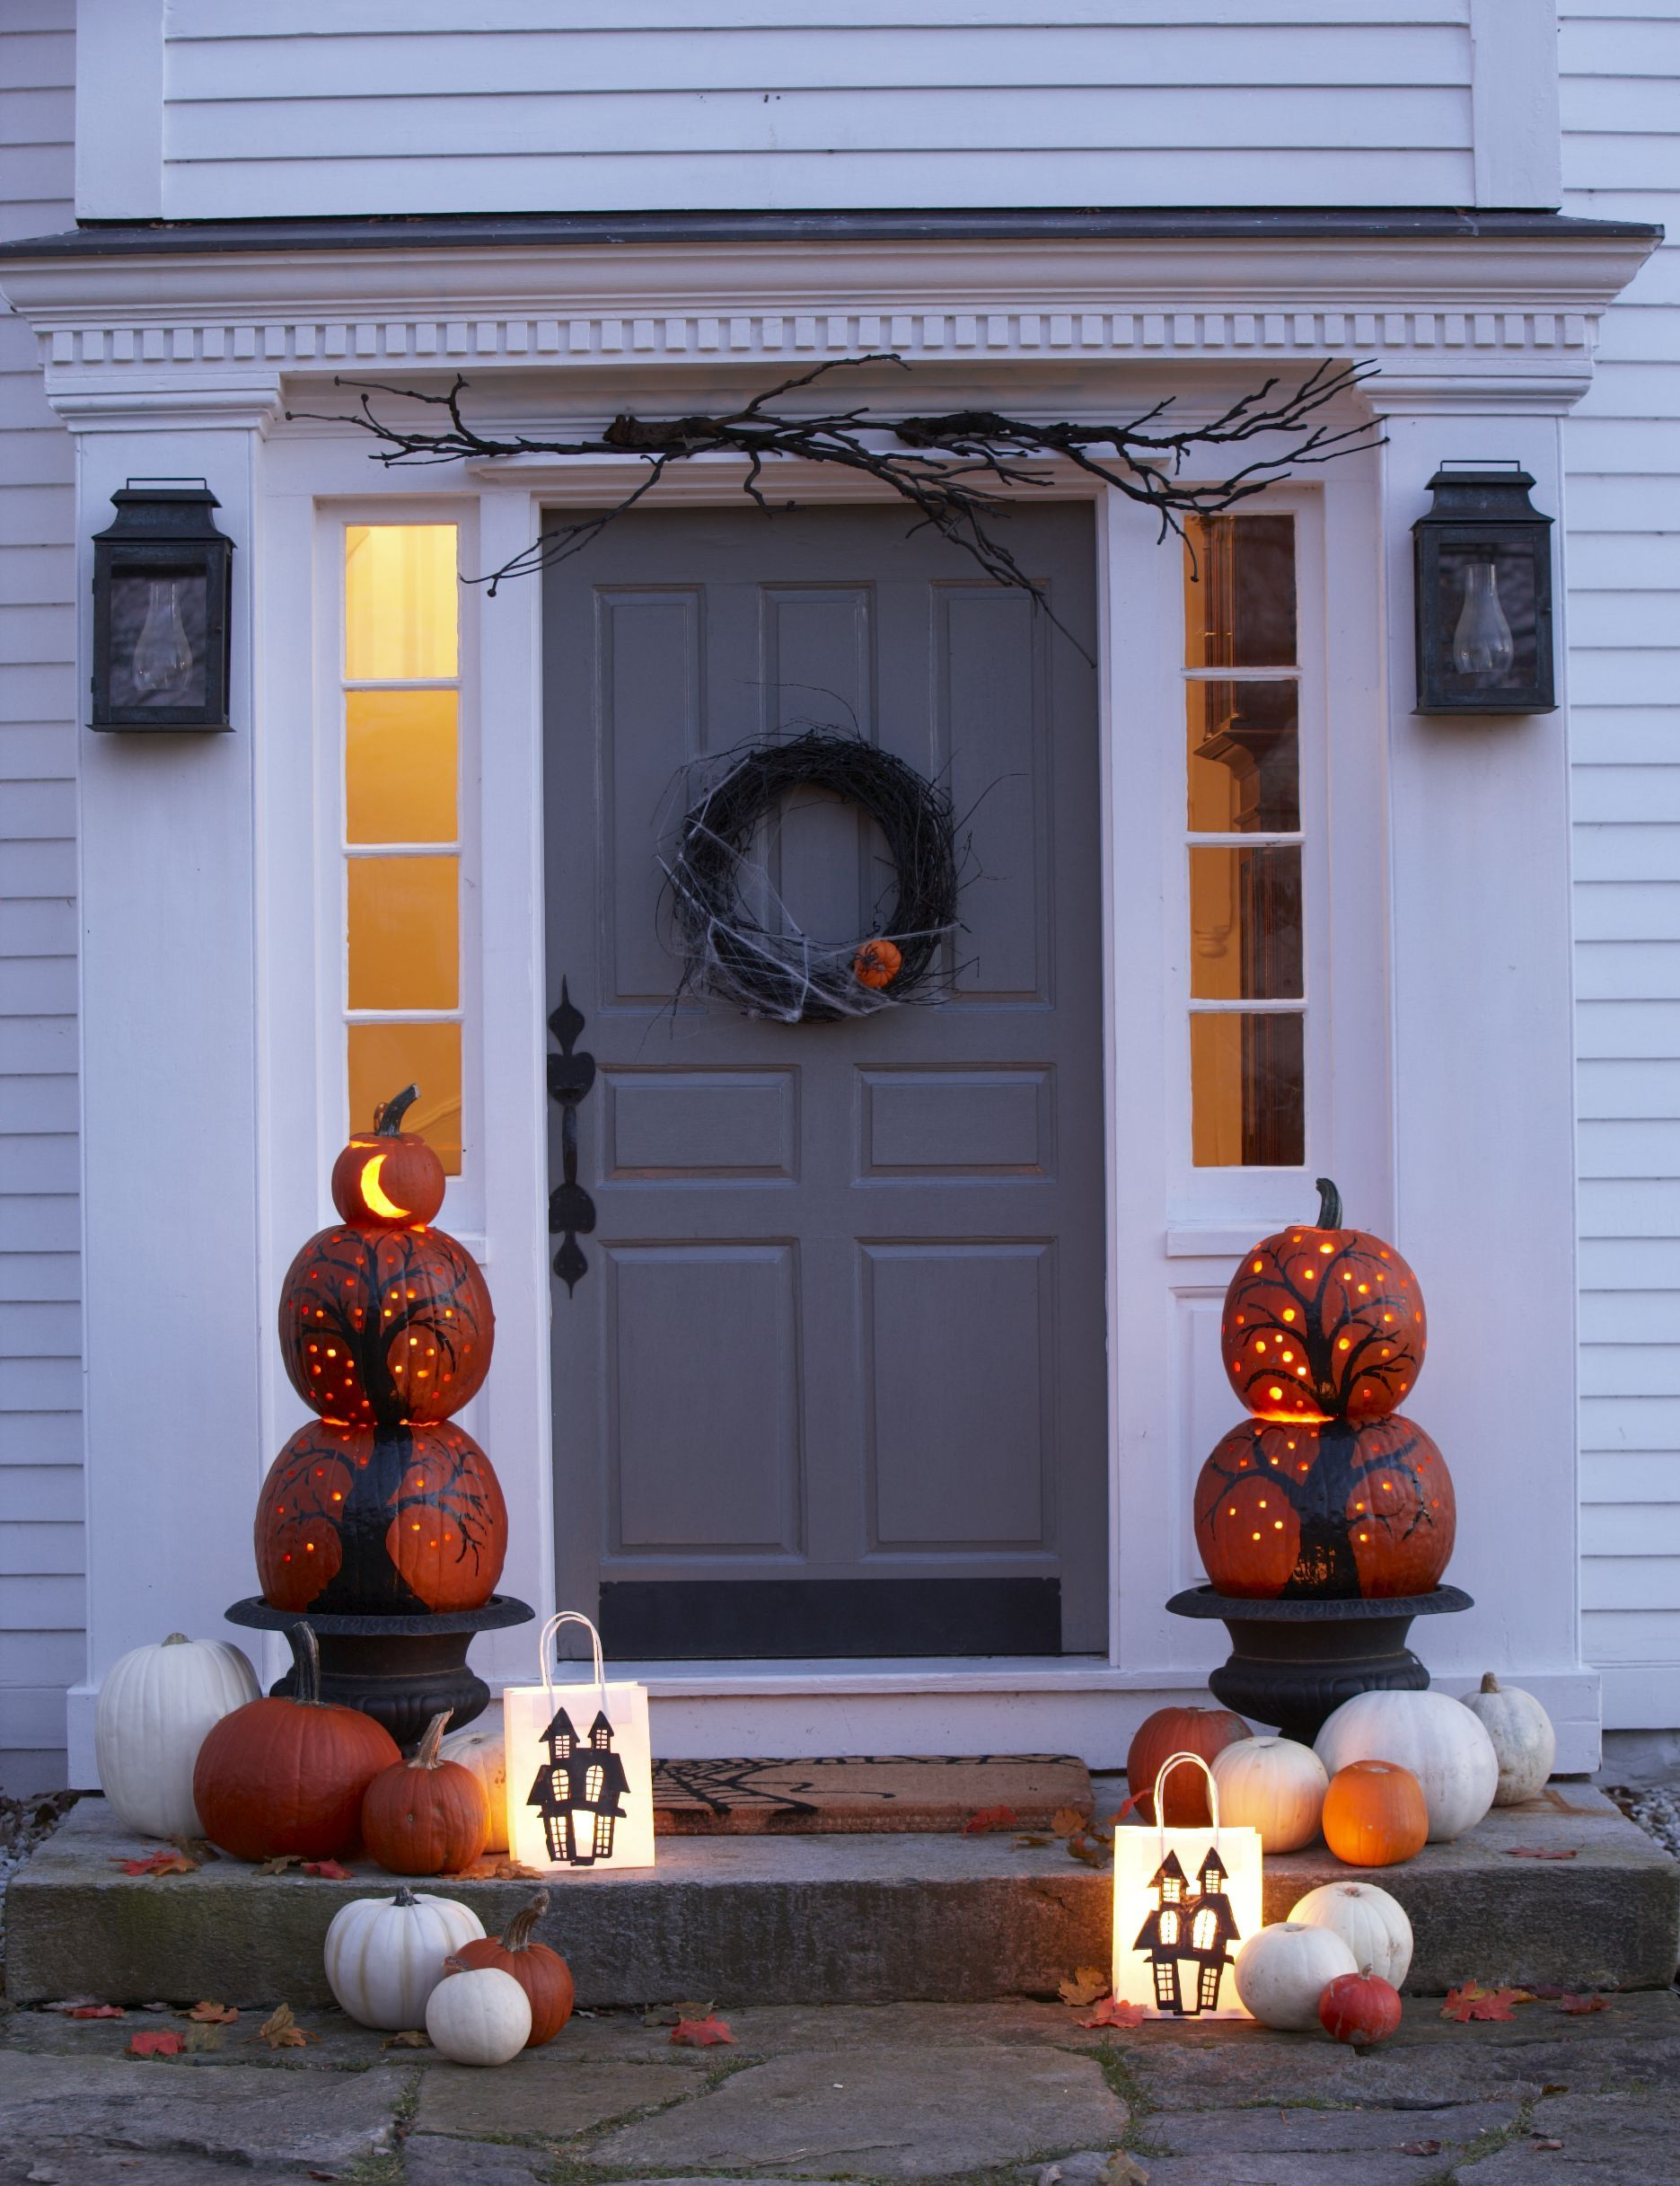 pumpkin decorating for front door wwwthedailybasics ! LOVE THIS